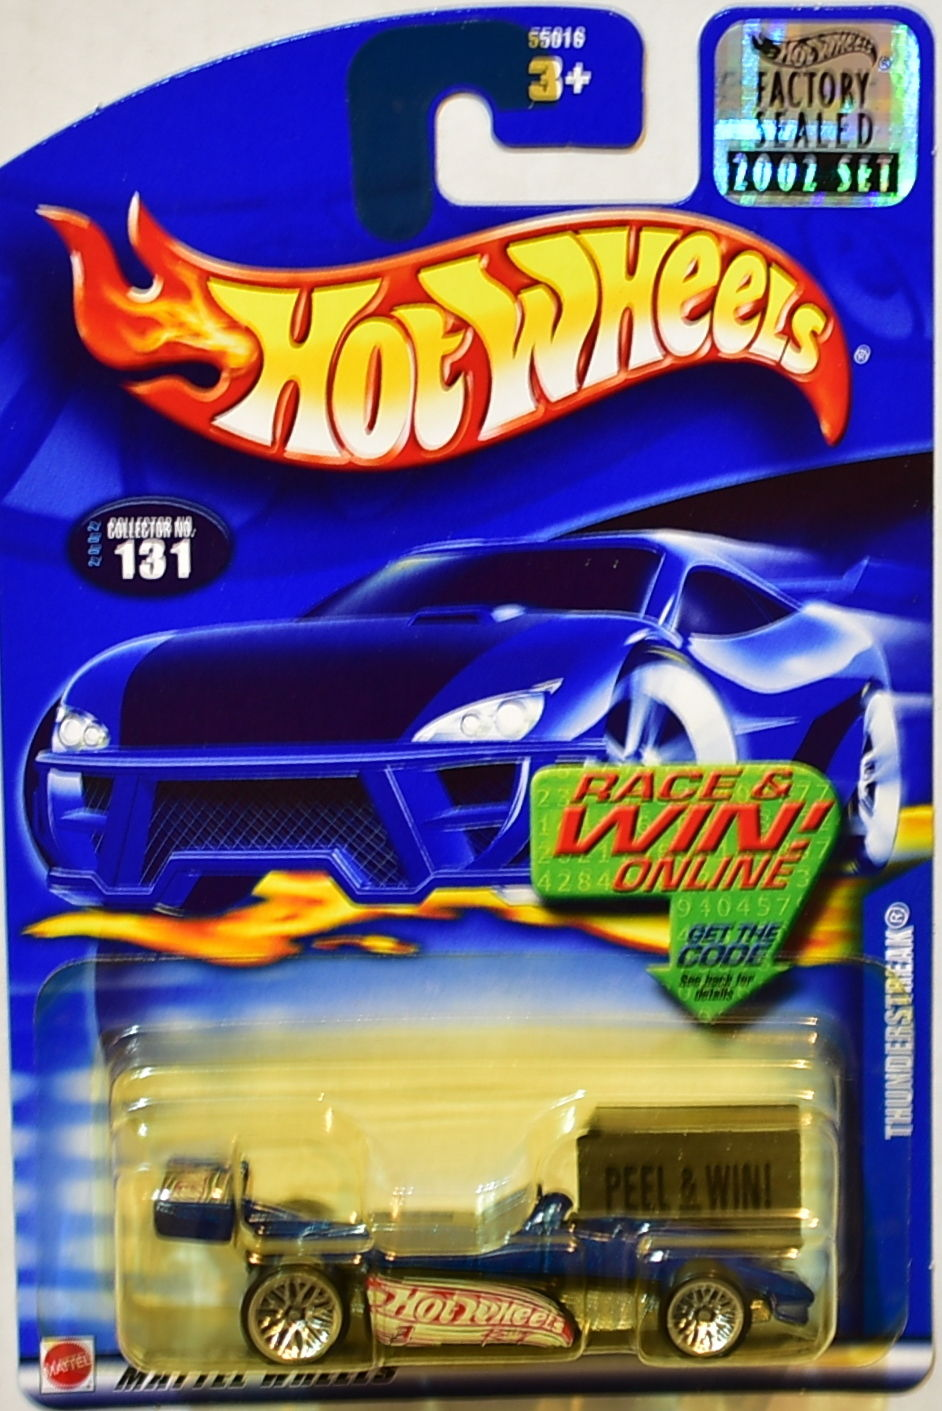 HOT WHEELS 2002 THUNDERSTREAK #131 BLUE FACTORY SEALED